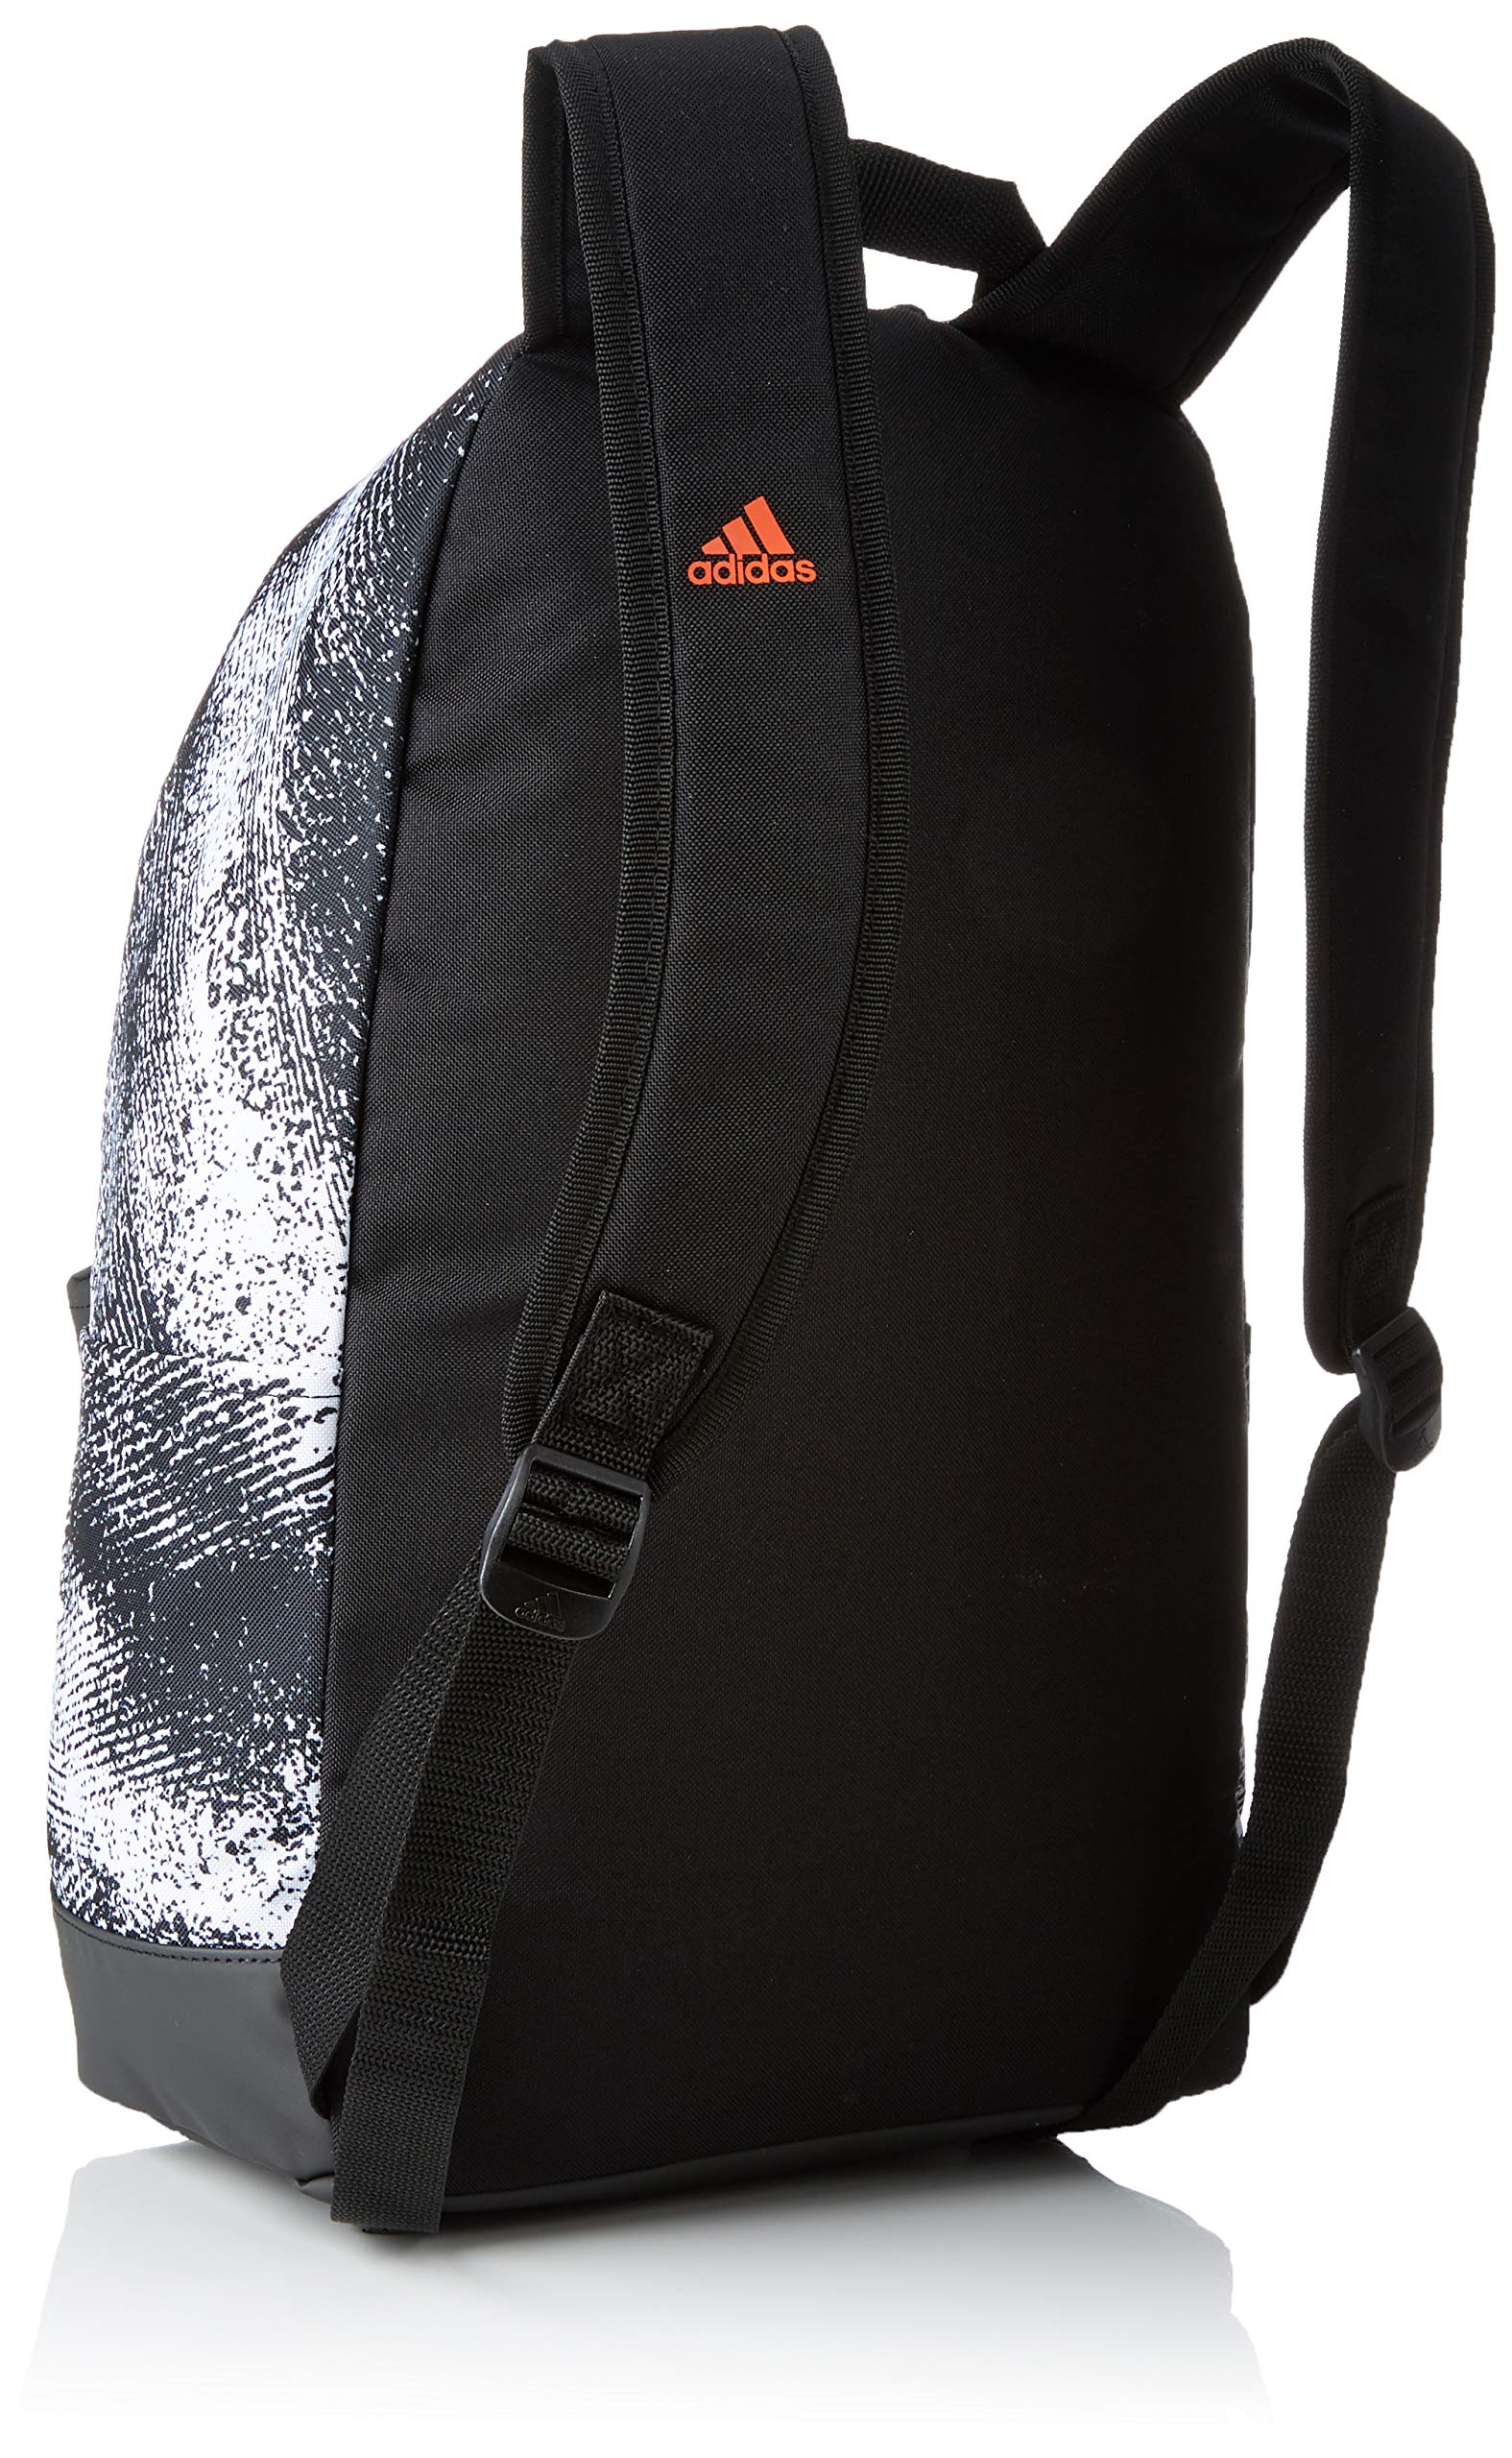 91ipHO5fyNL - adidas Training Mochila Tipo Casual 46 Centimeters 25